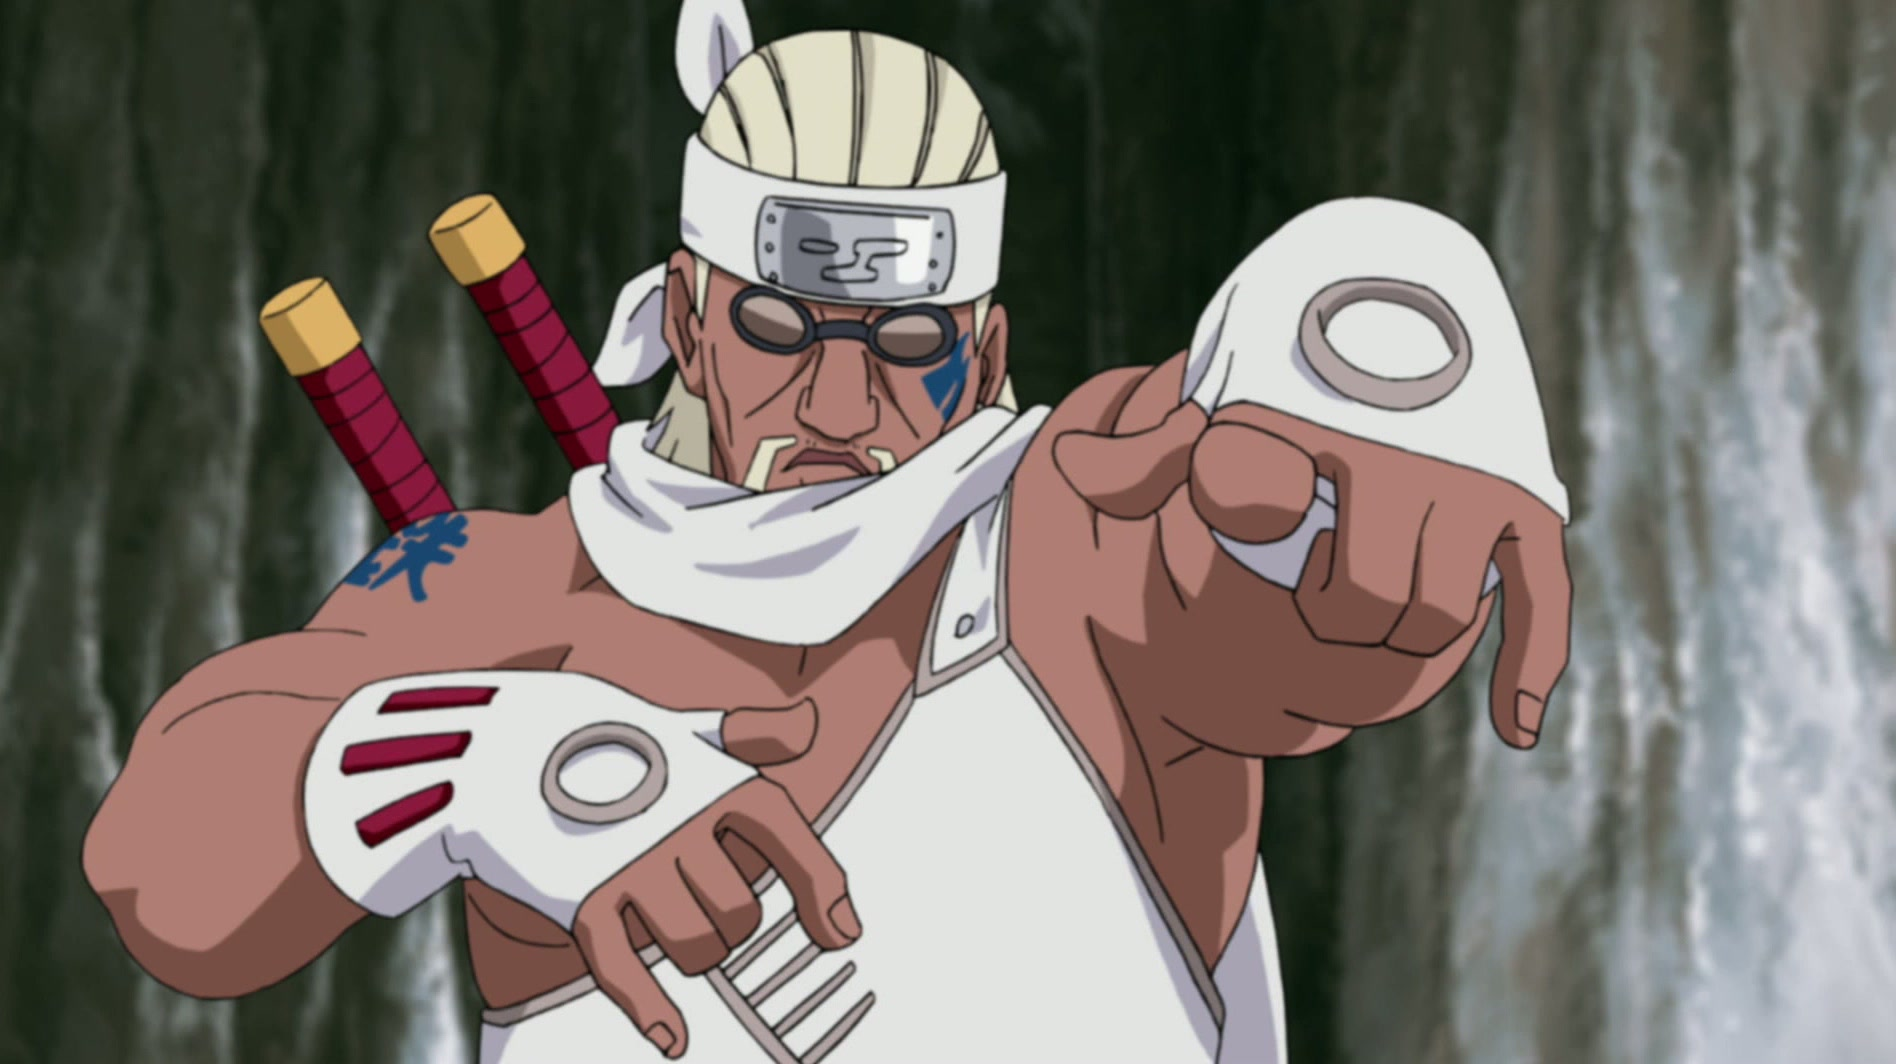 Naruto Shippuden: The Assembly of the Five Kage Episode 206